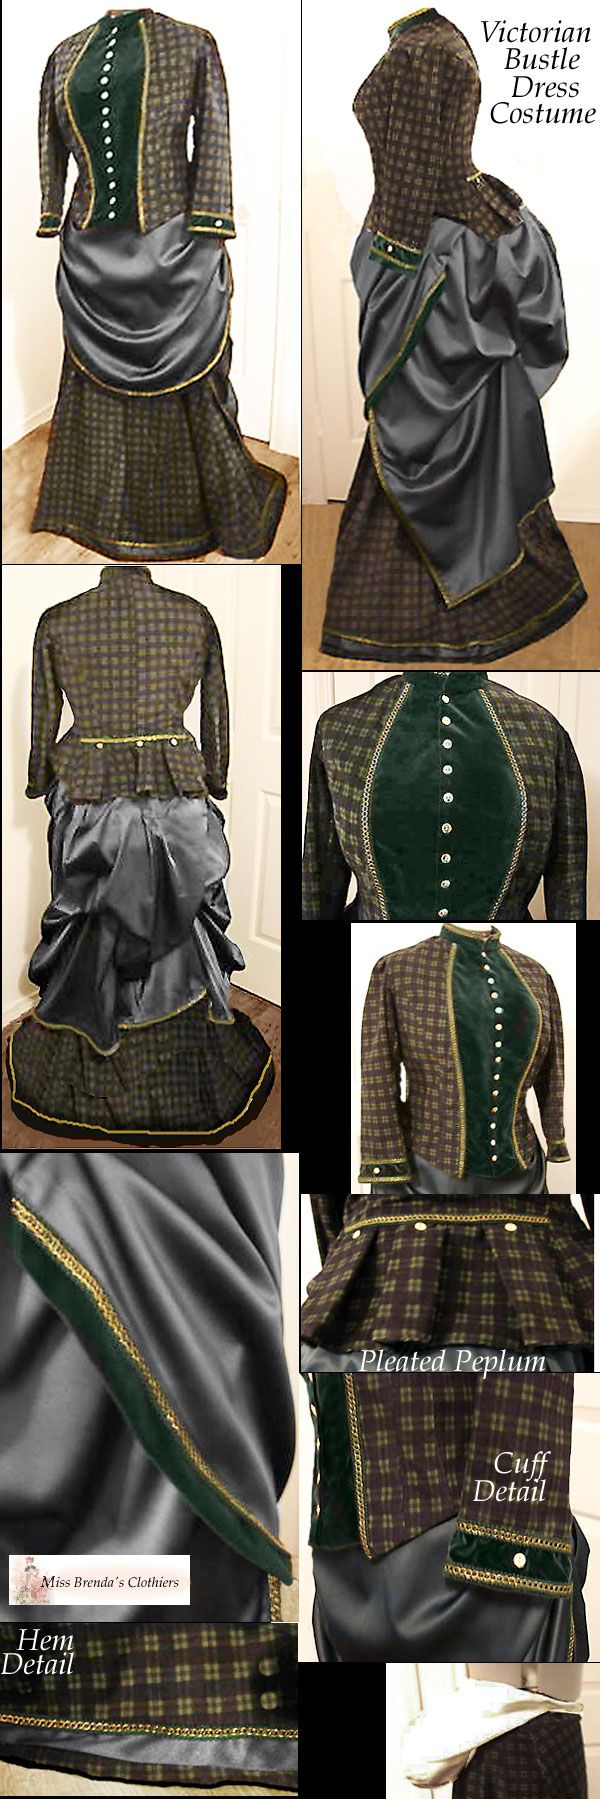 1886 Victorian Bustle dress costume reproduction with VELVET and plaidVictorian Bustle